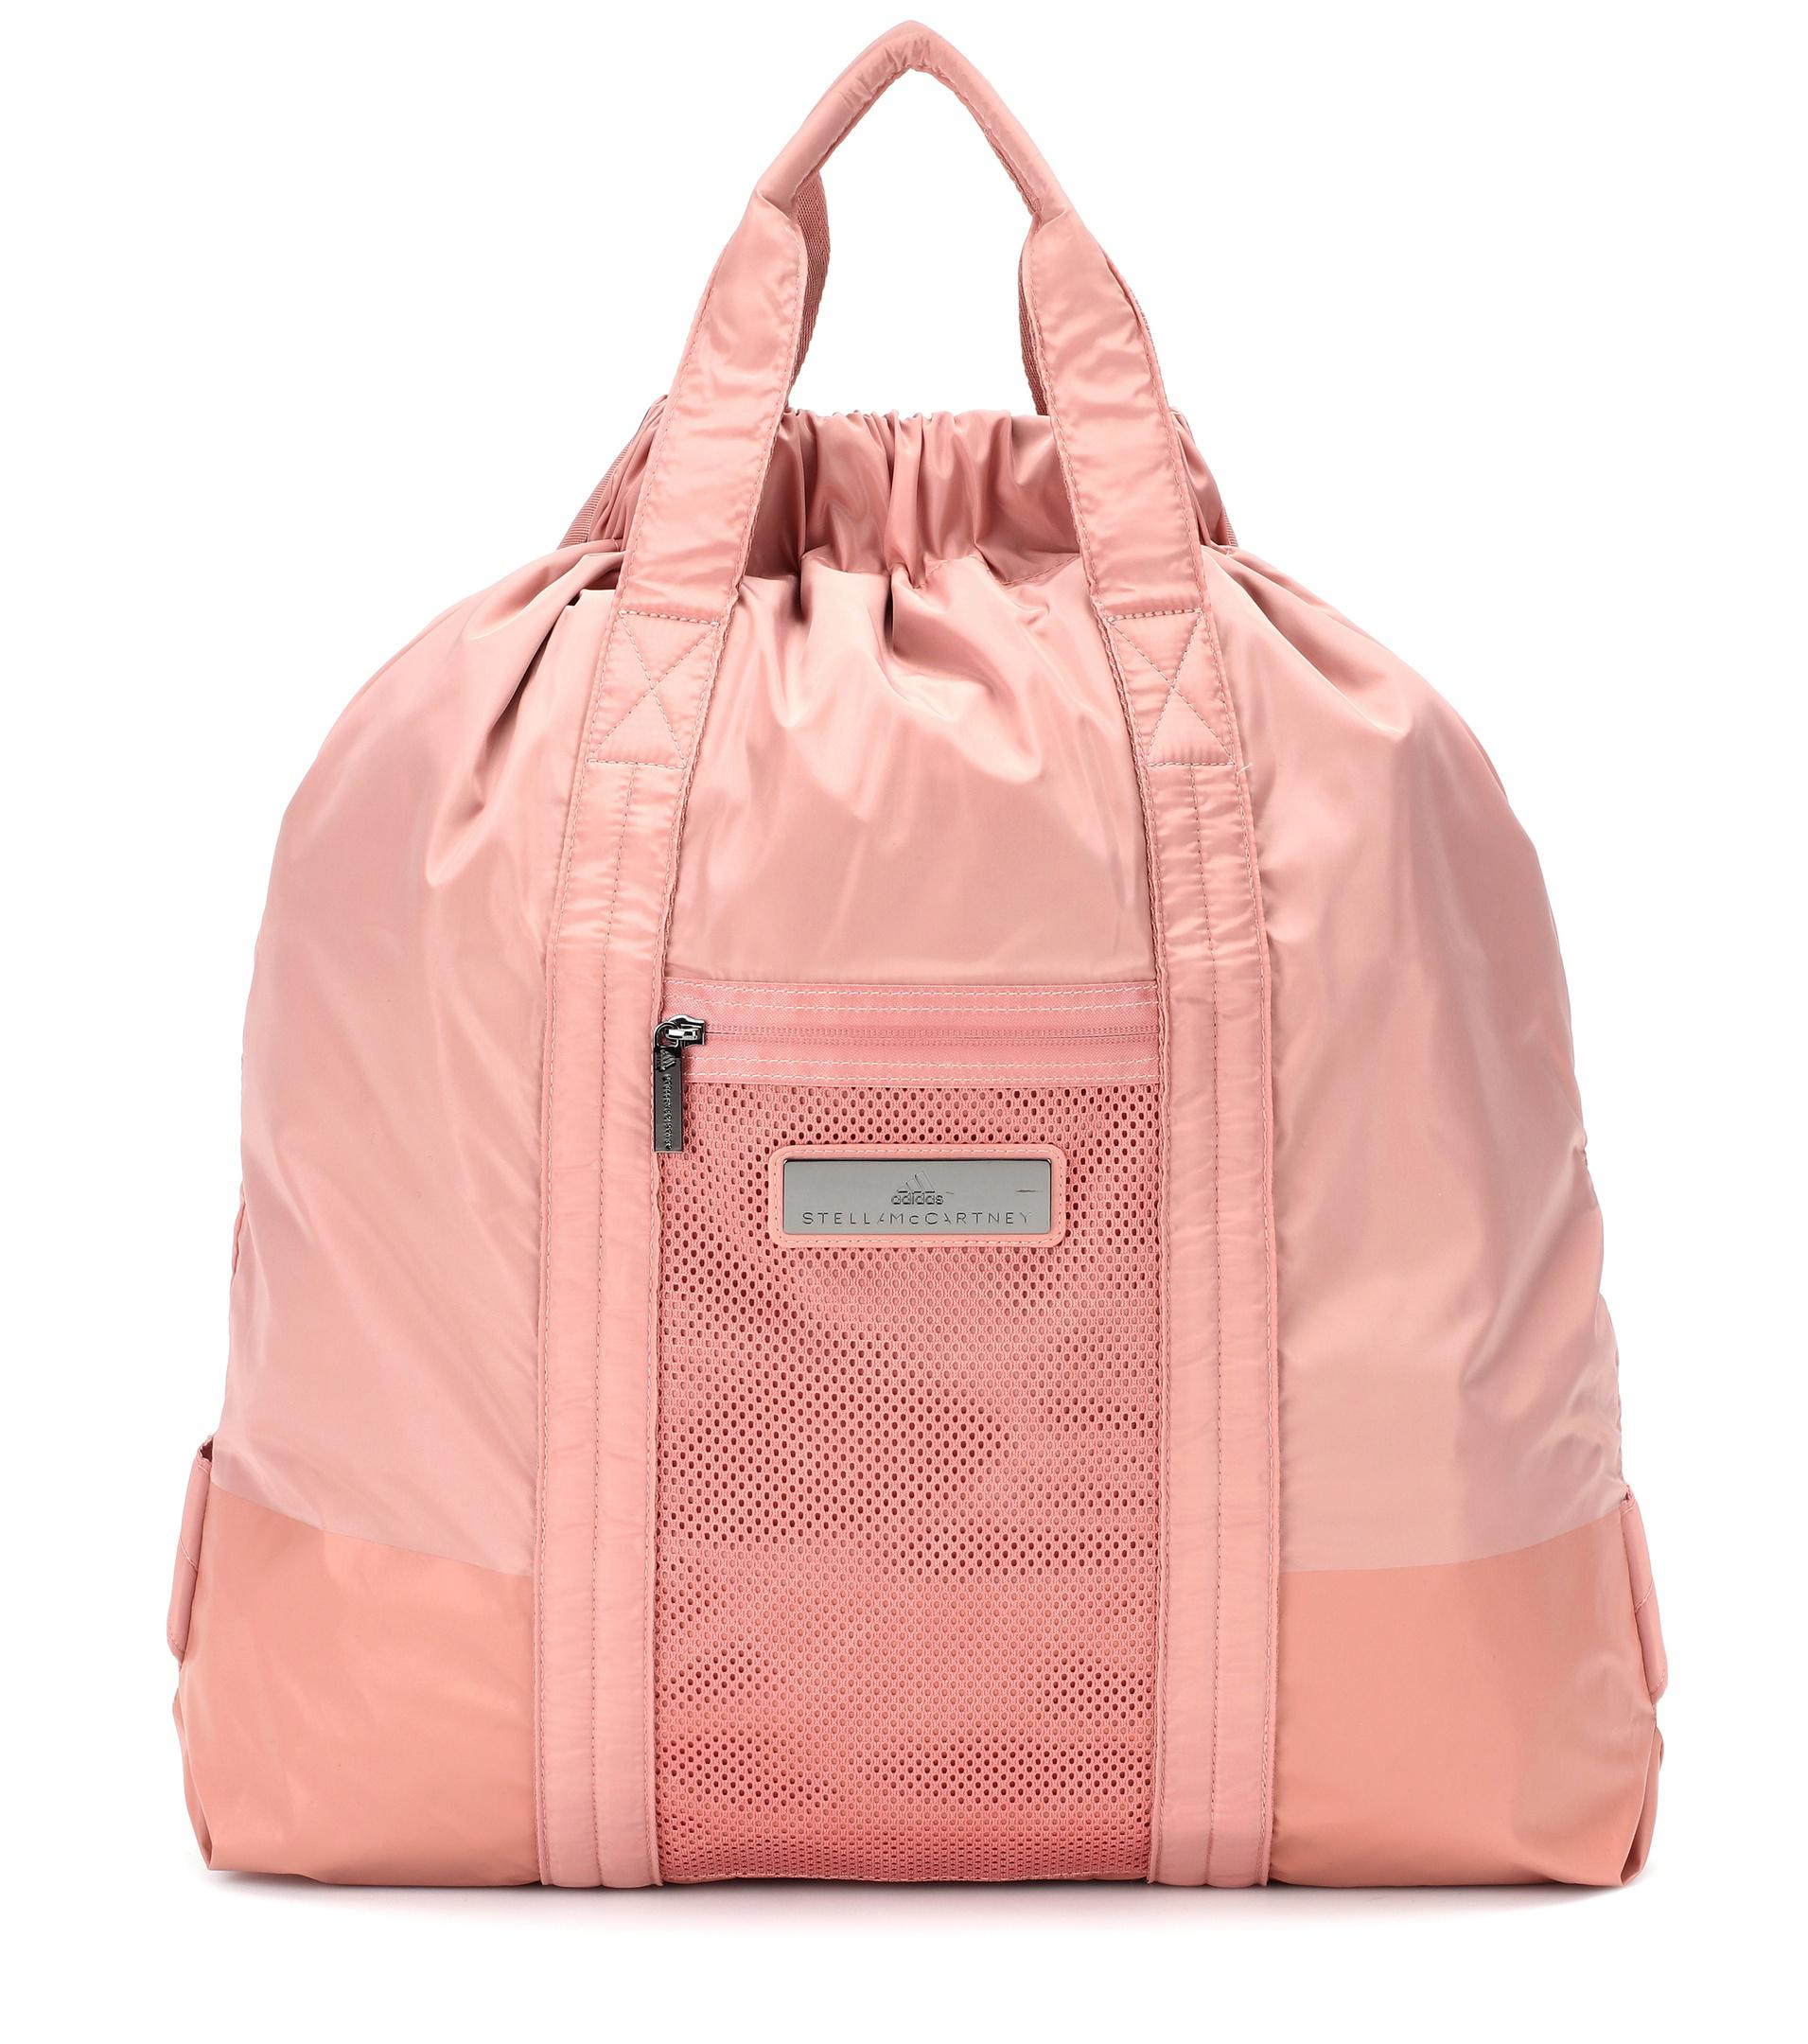 ce5ae3be6c Lyst - adidas By Stella McCartney Gym Bag in Pink